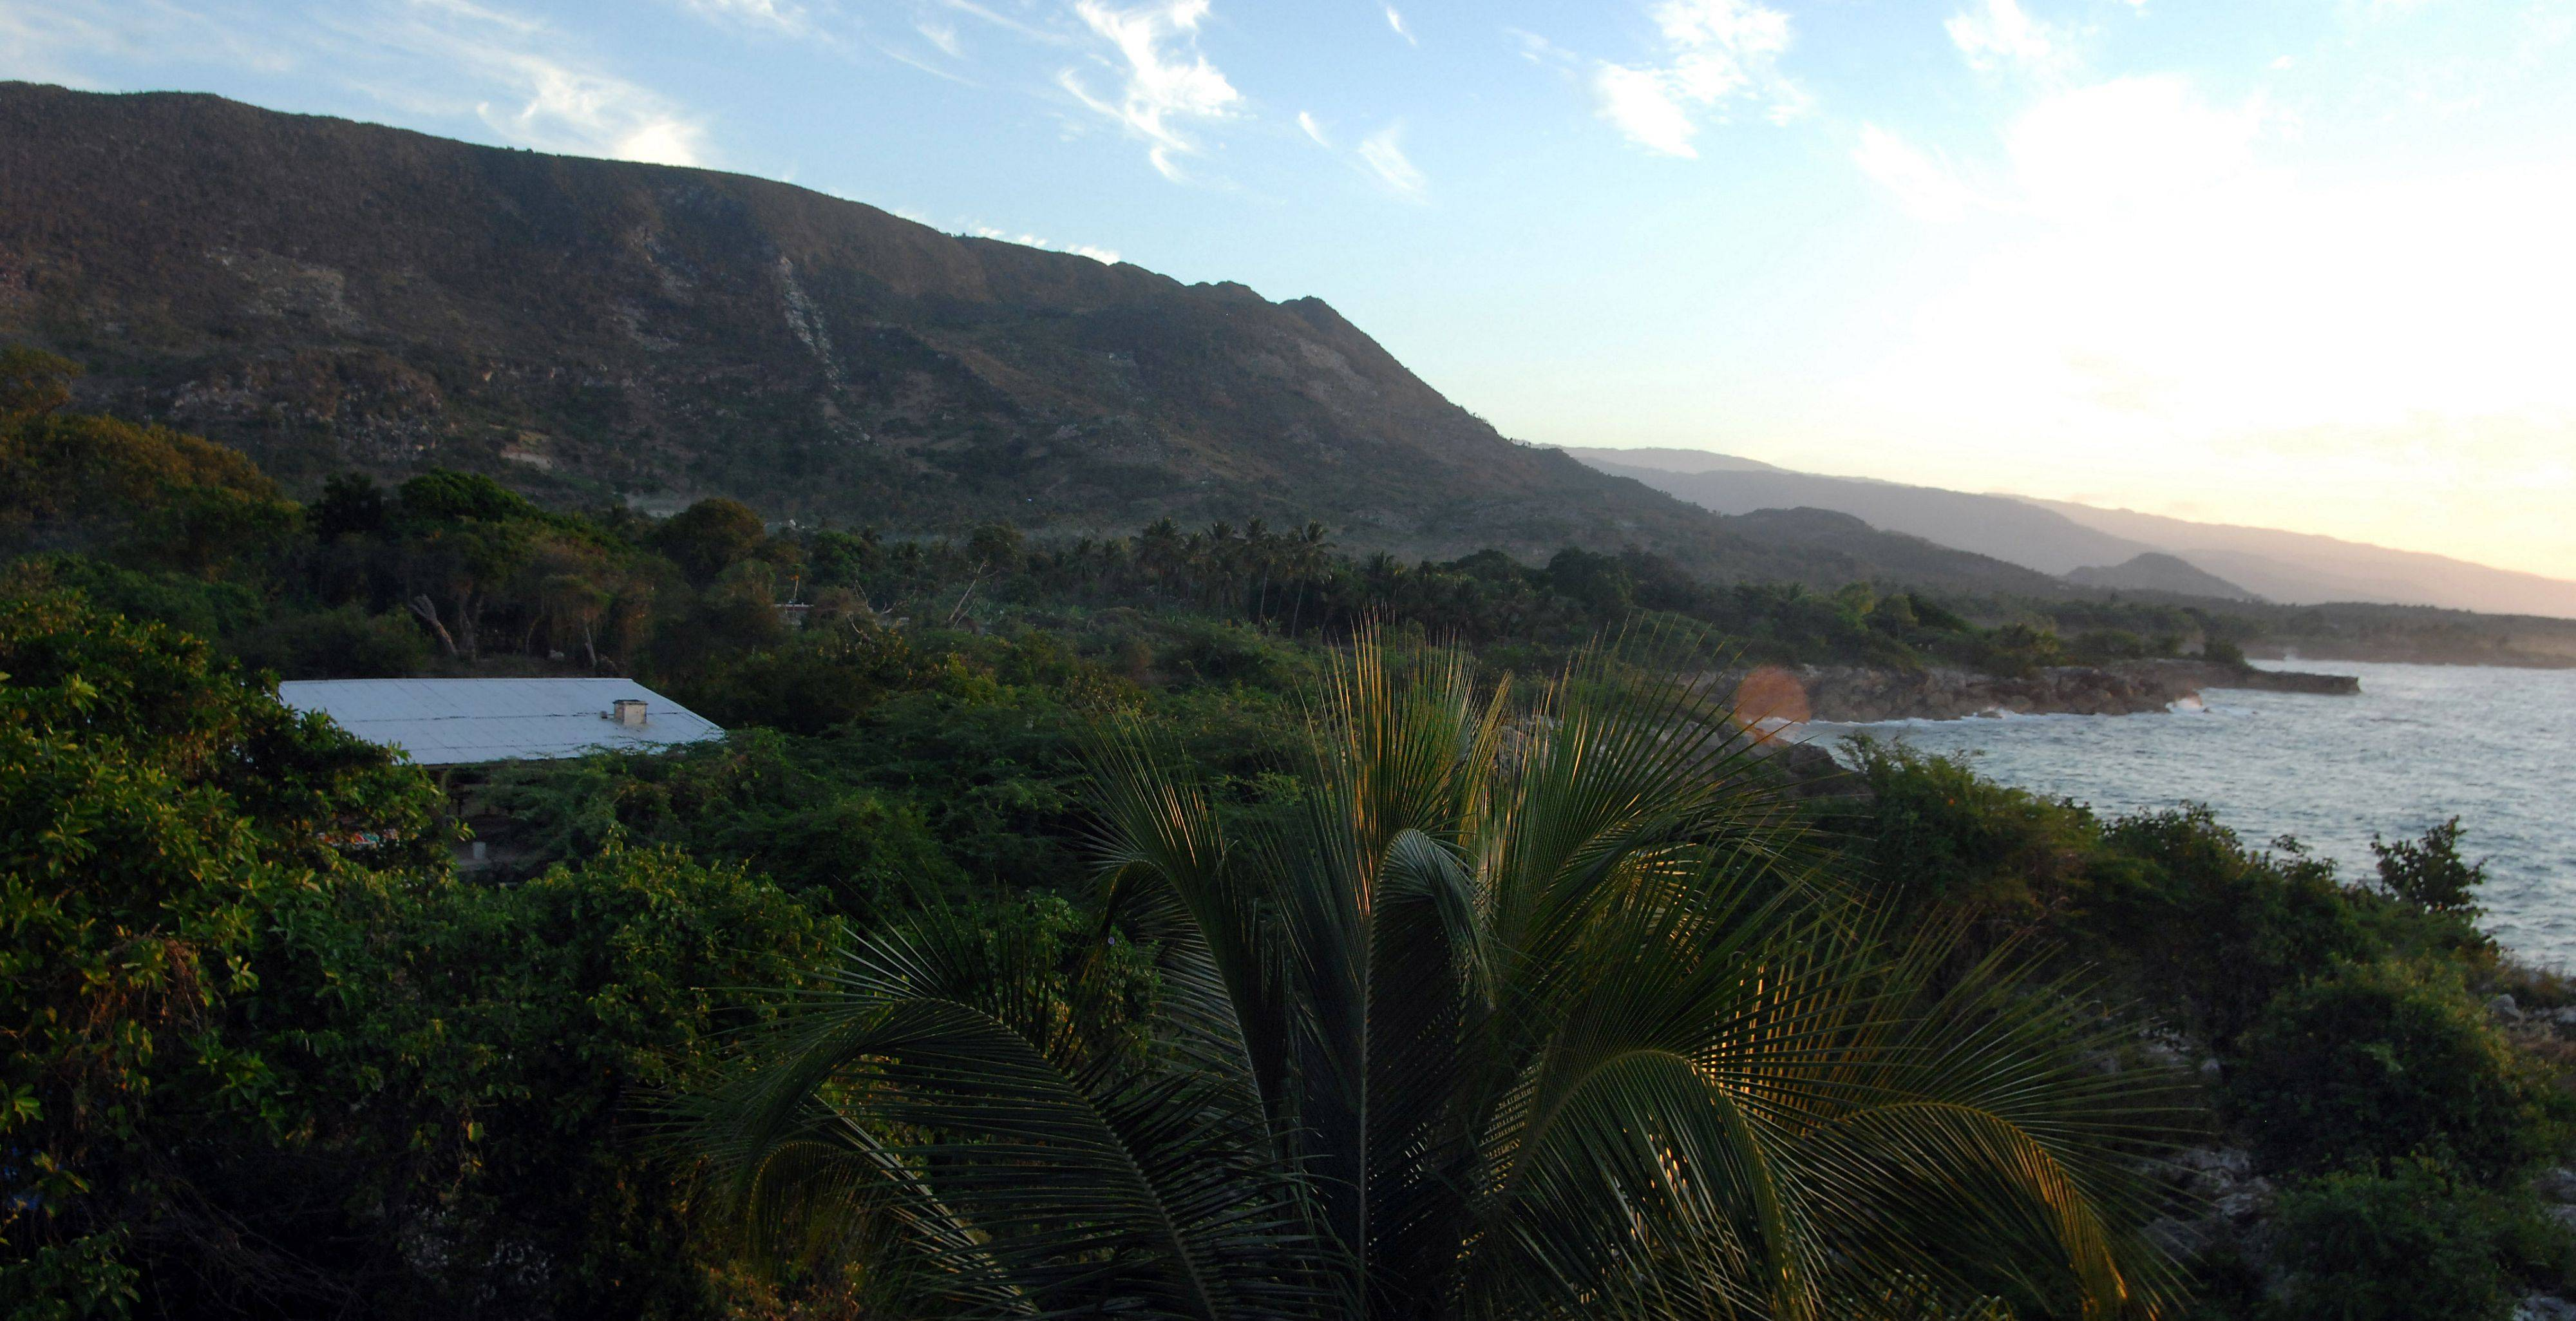 Lisa Ballantine's FilterPure factory sits in the lush countryside next to the Caribbean Sea in Jacmel, Haiti.